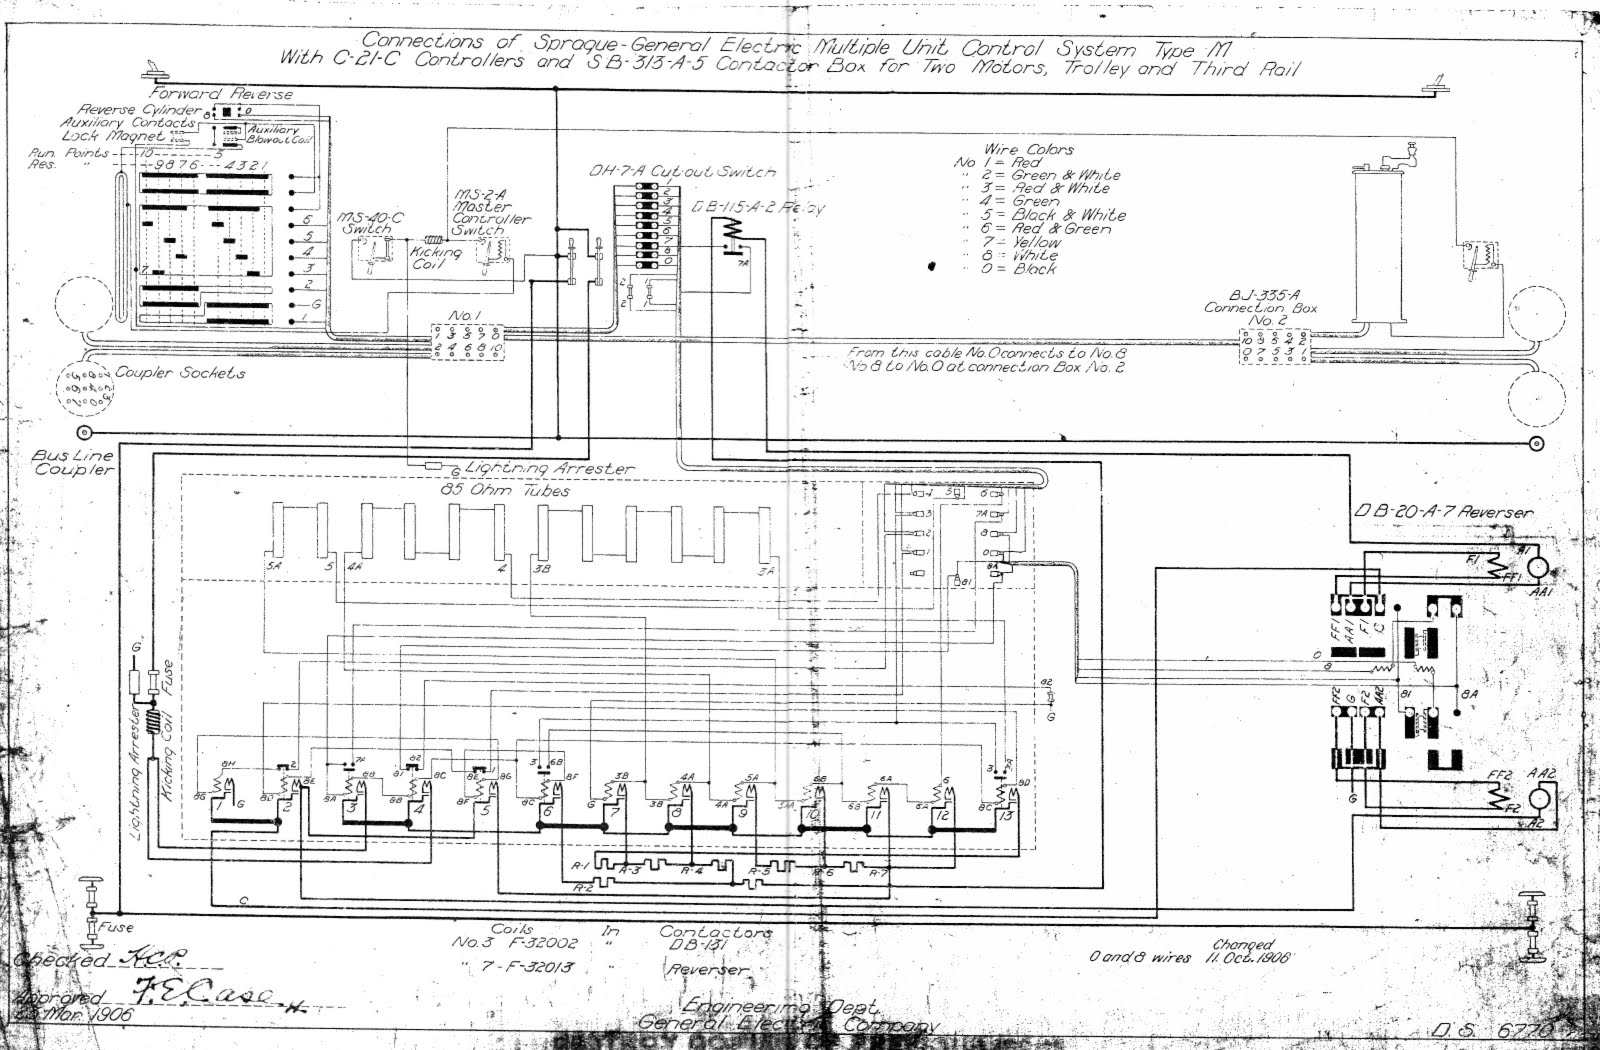 1997 Blazer Wiring Diagram Another Blog About Wiring Diagram \u2022 Wiring  For S10 V8 1997 S10 Ignition Wiring Diagram